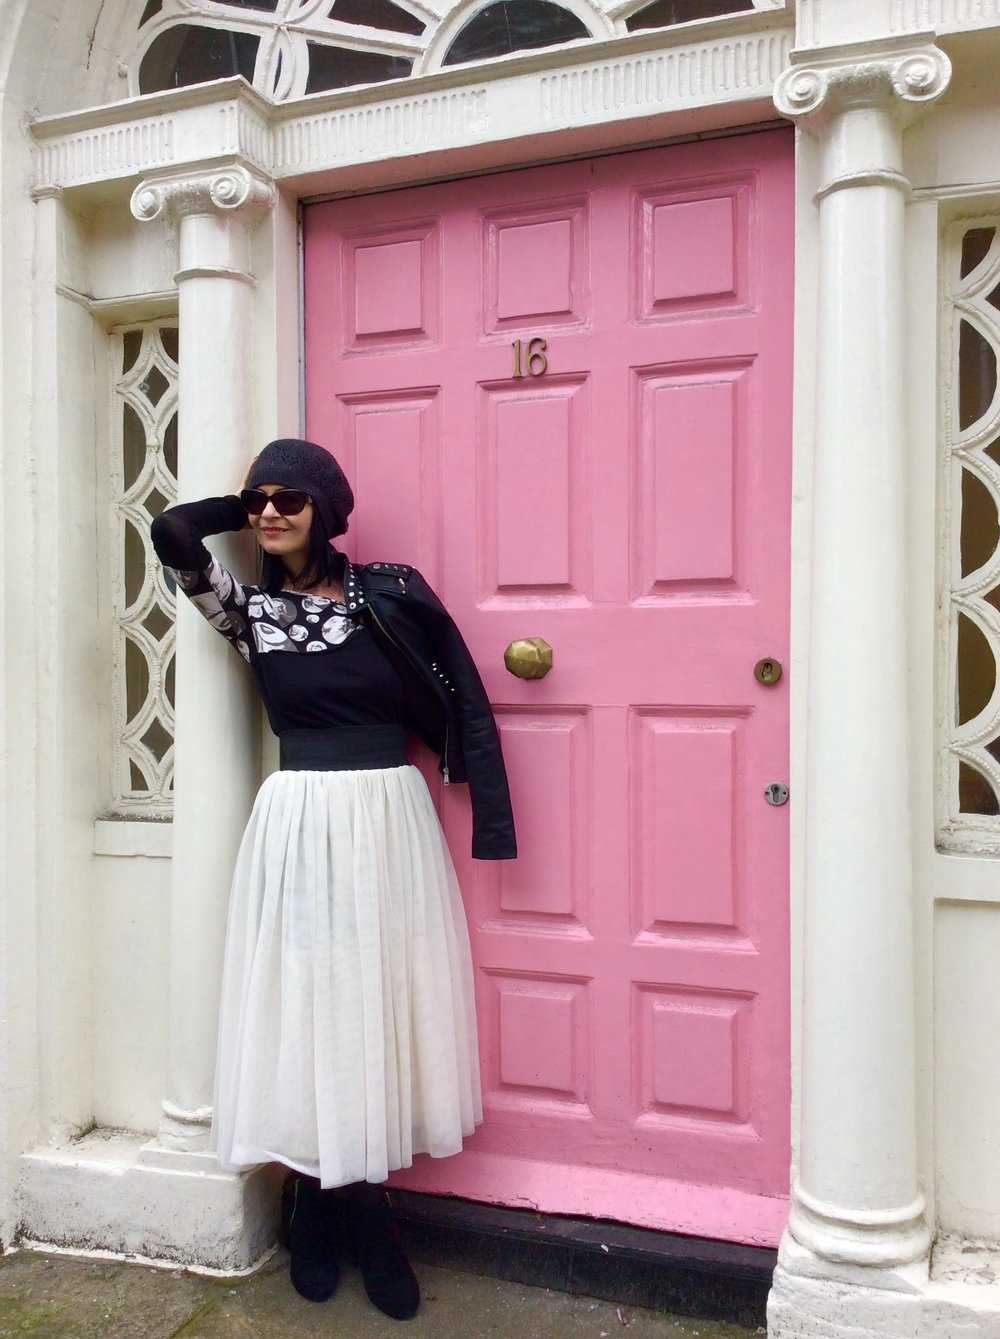 Overall an entire outfit bought in a charity/thrift store. This look won't date so quickly either ...